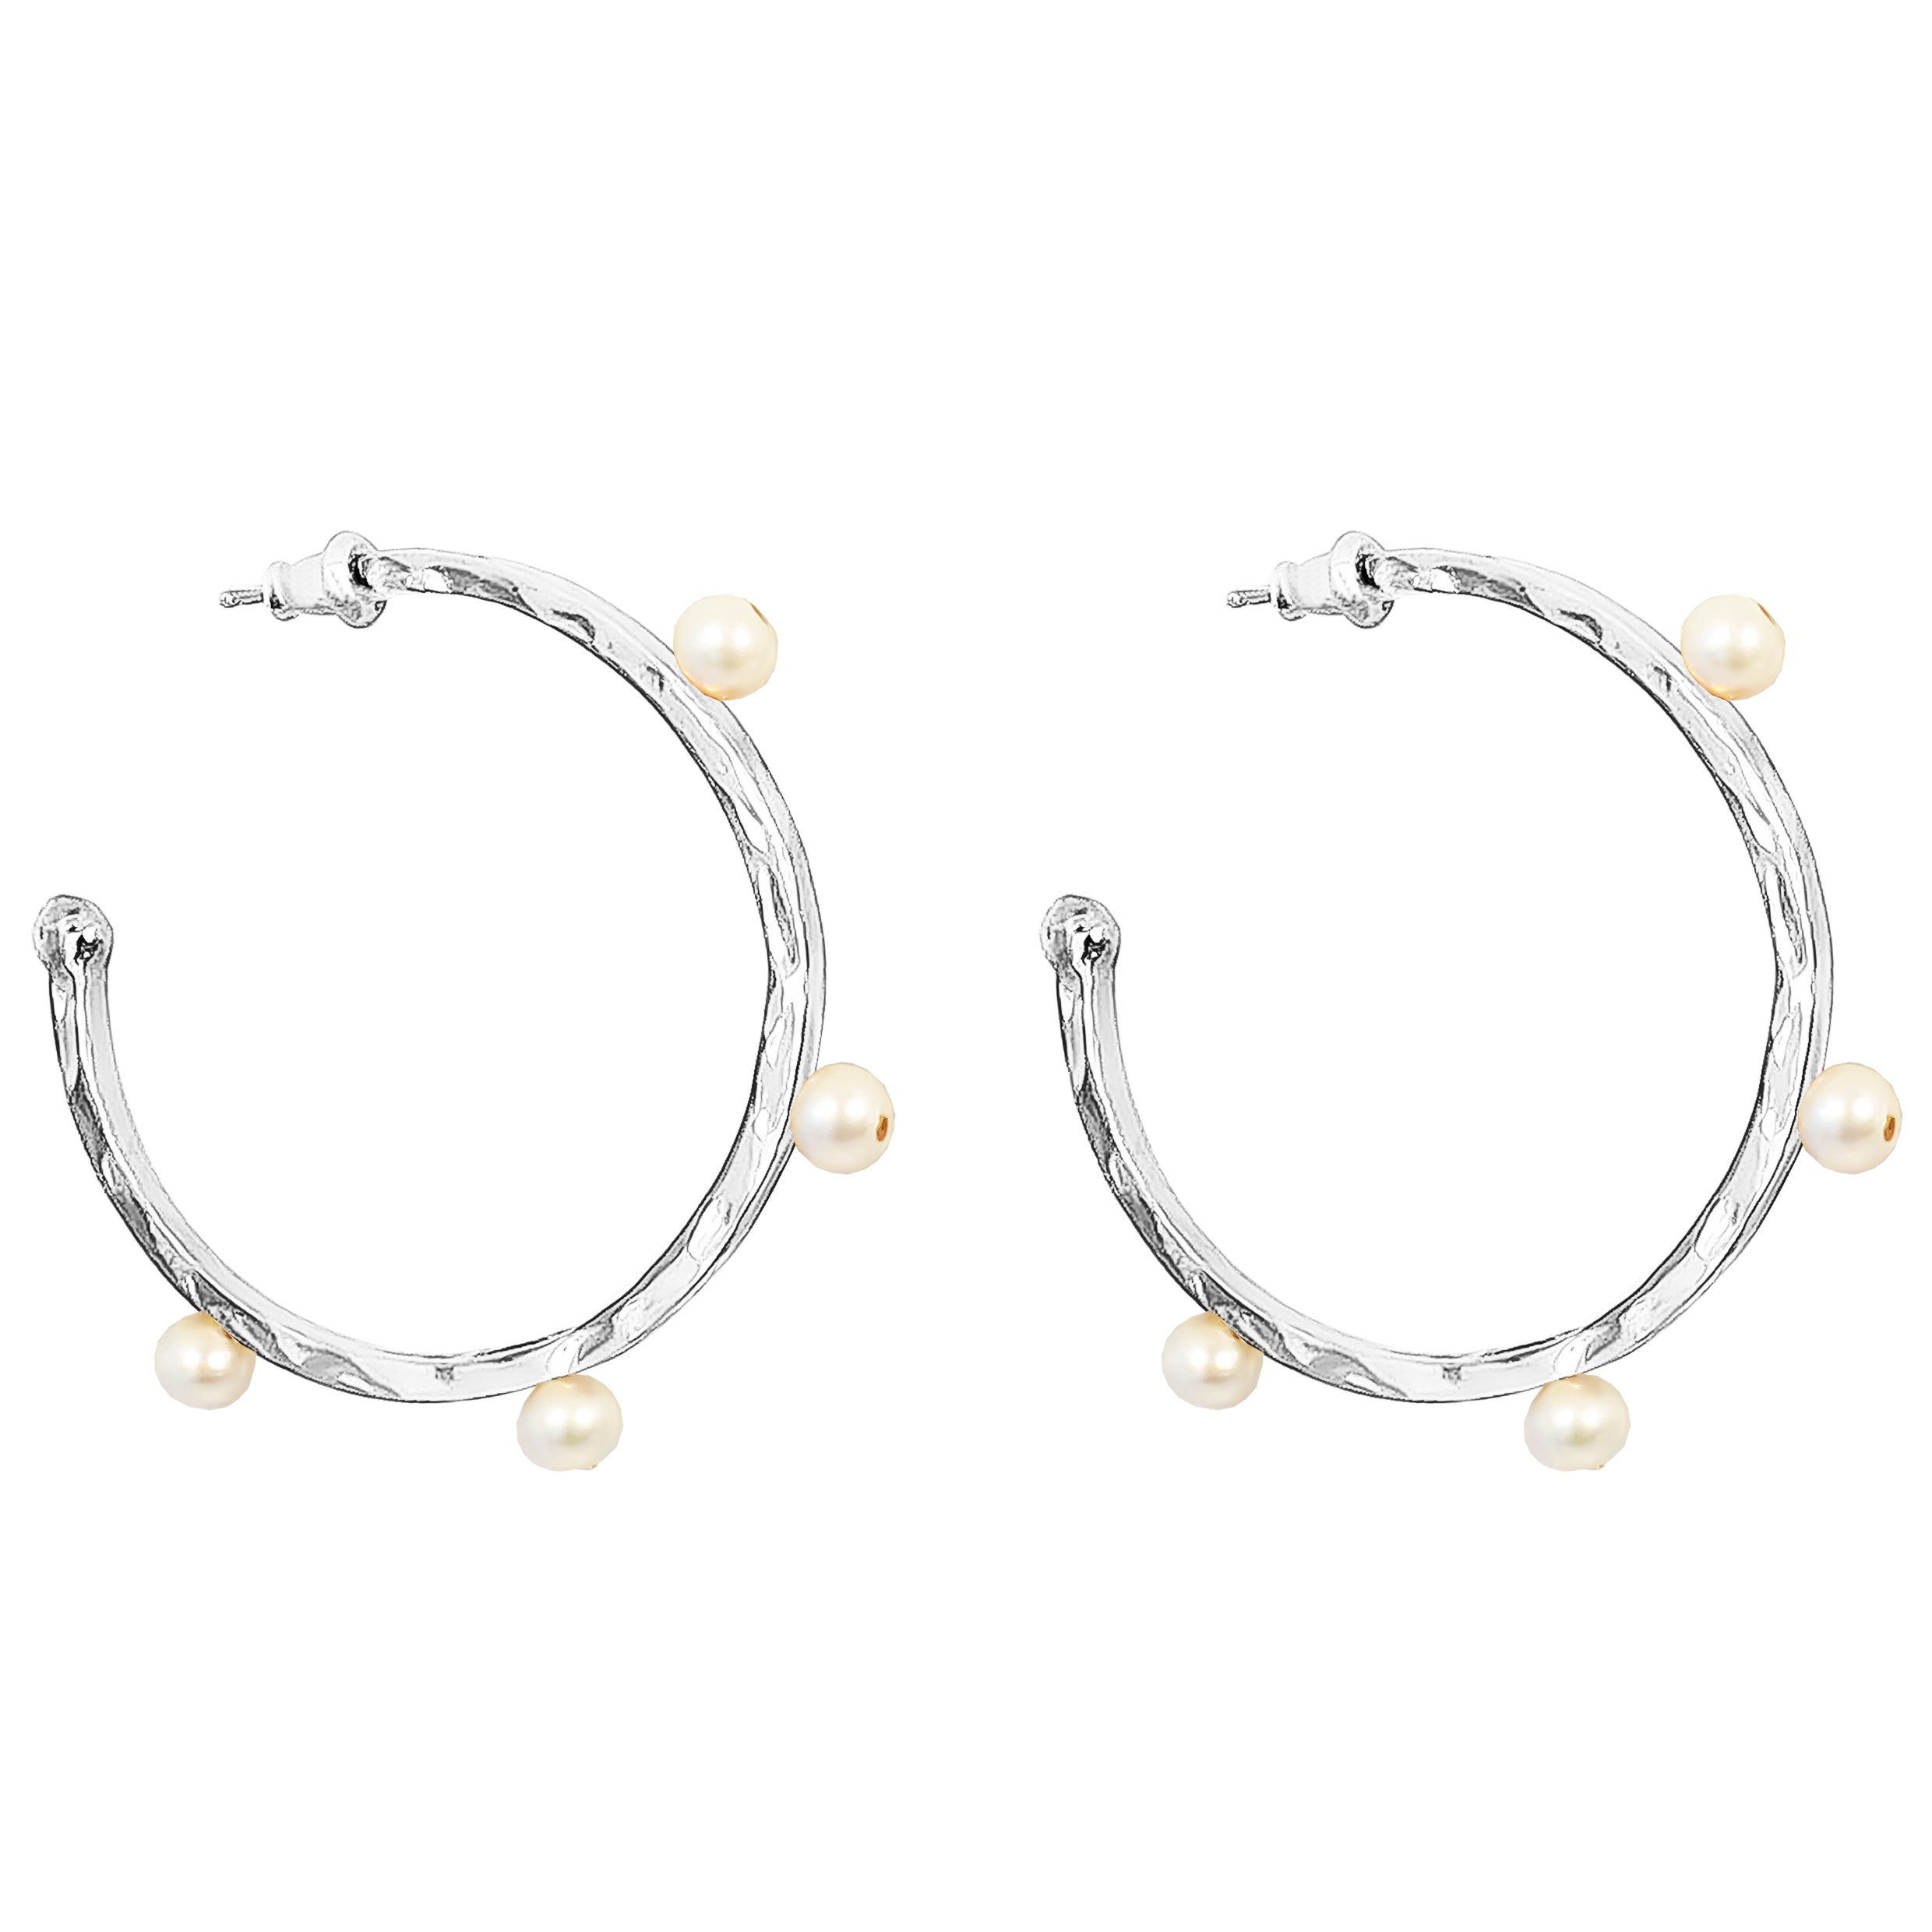 Bella Hammered Hoop Earrings | Silver With Pearl Detail